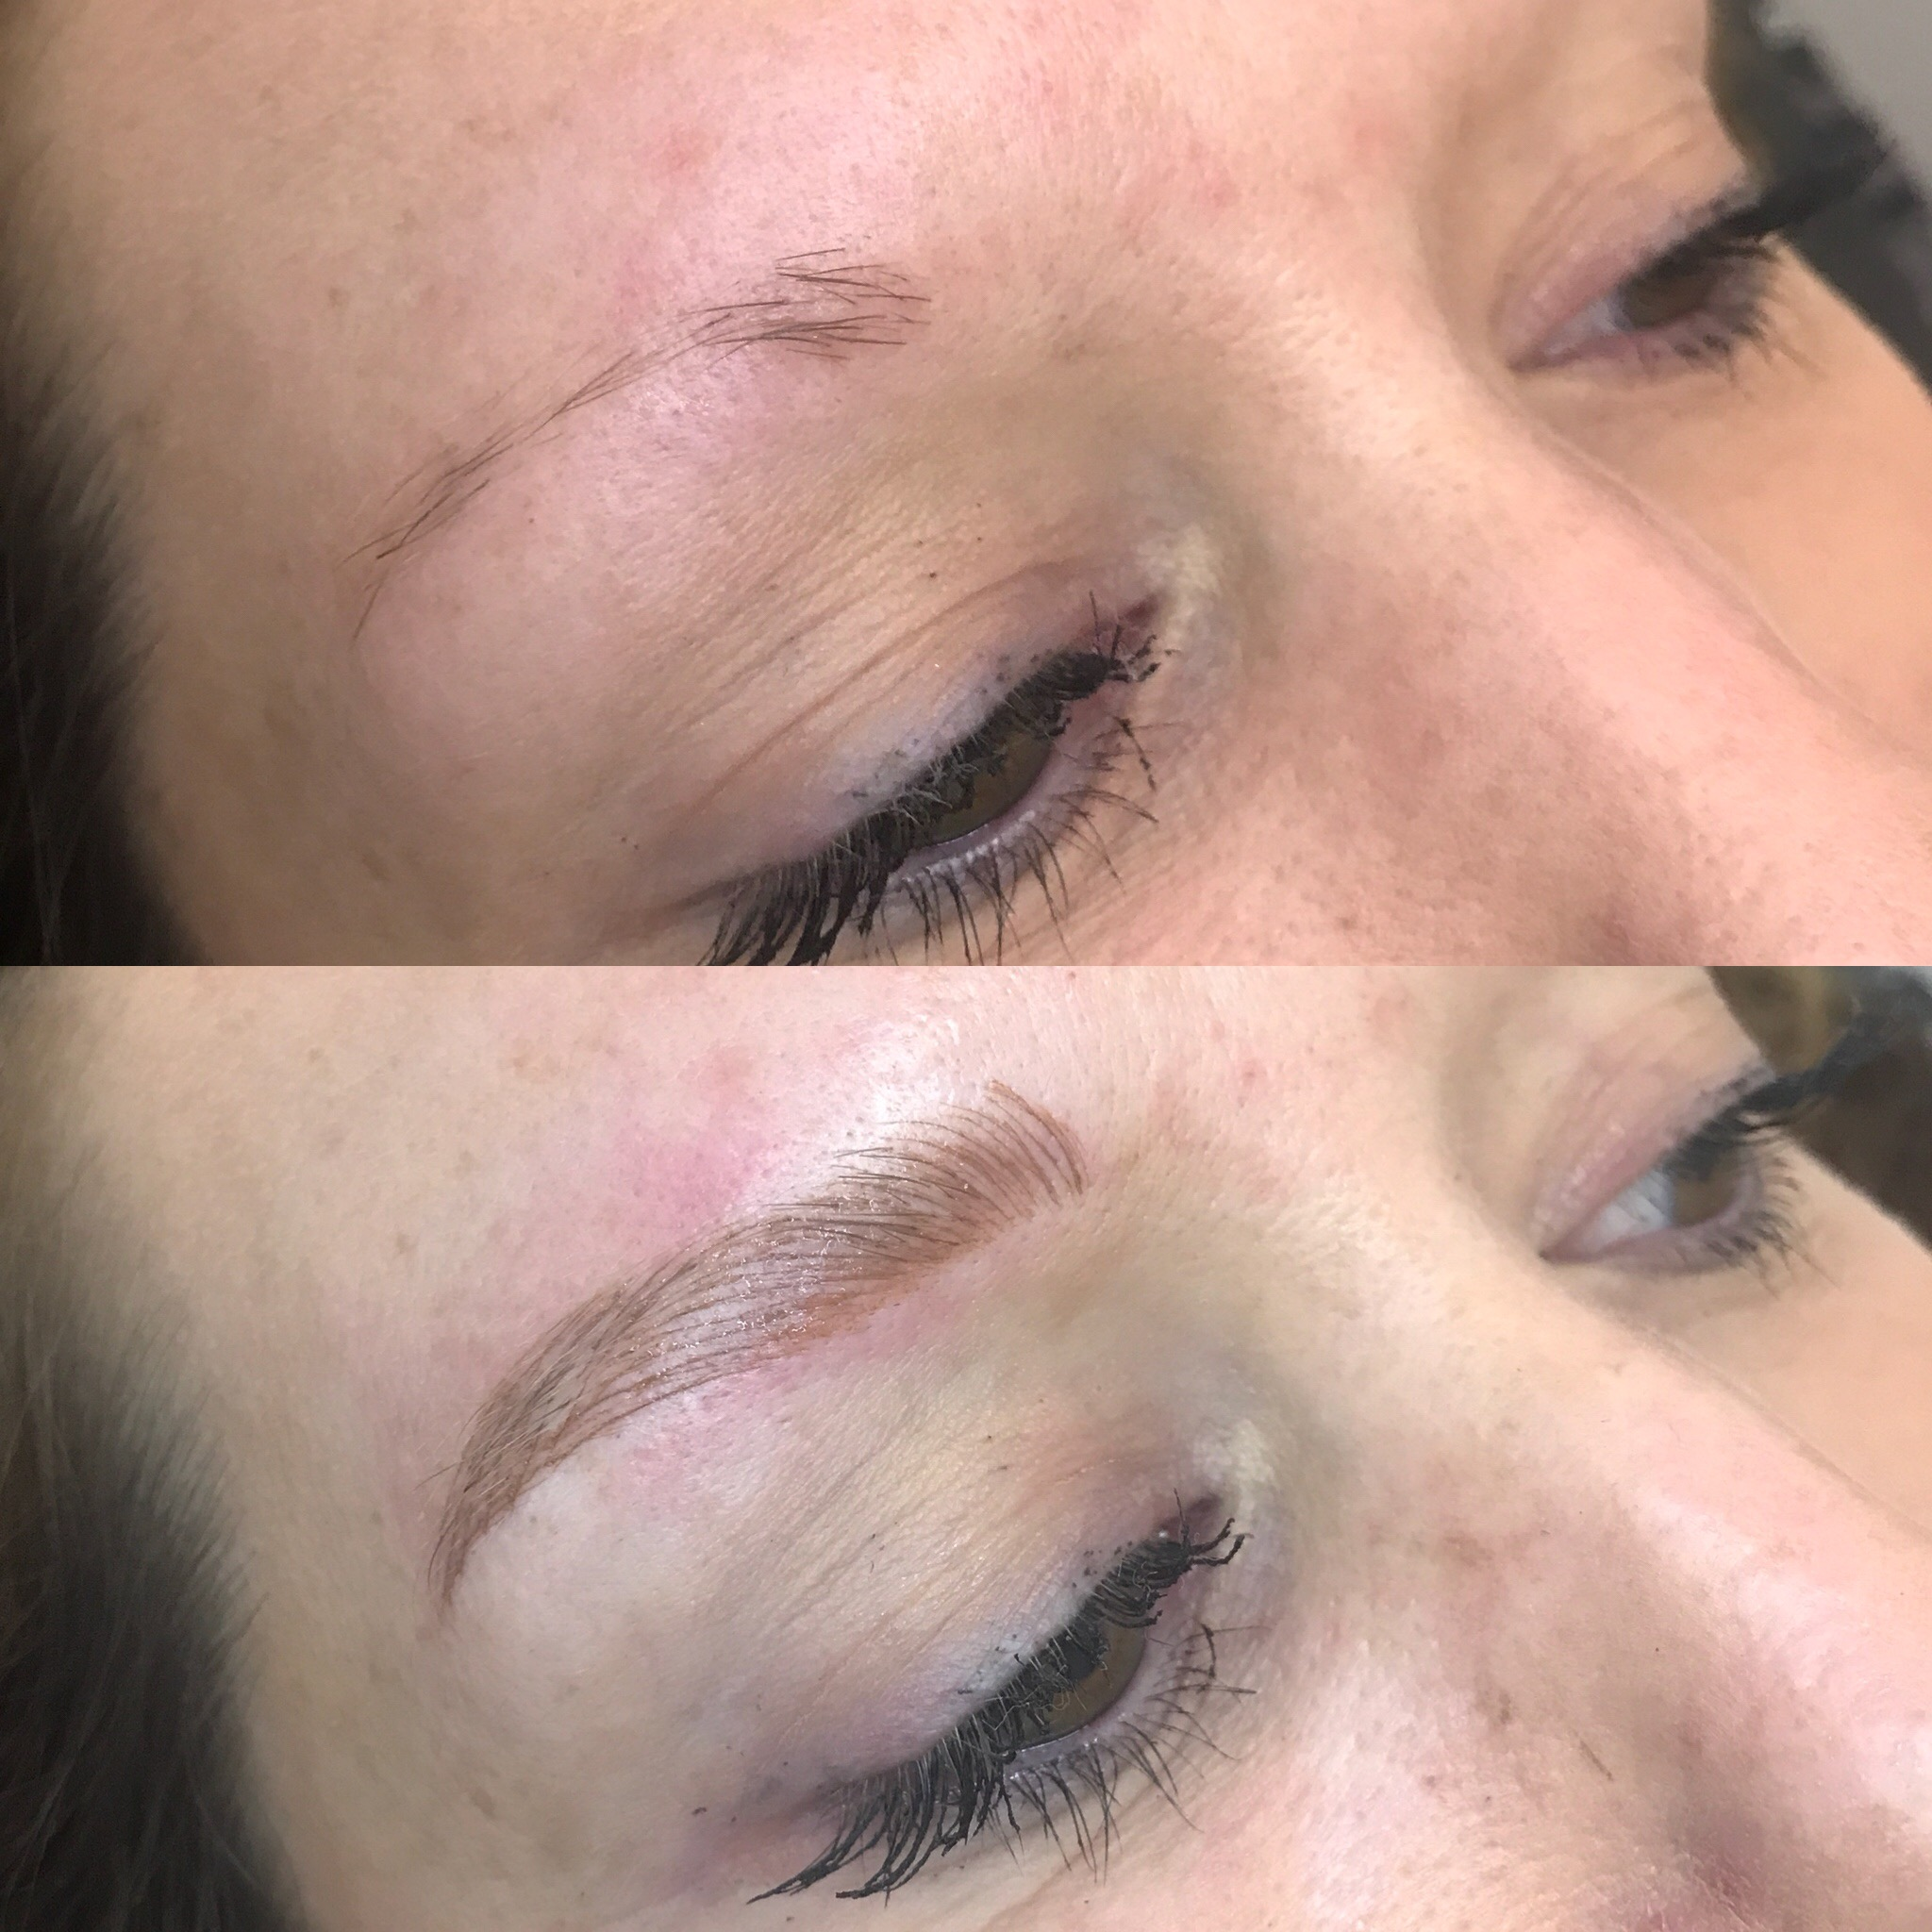 Don't let the Internet rumors about microblading scare you away, I'll just let you see these for yourself here.